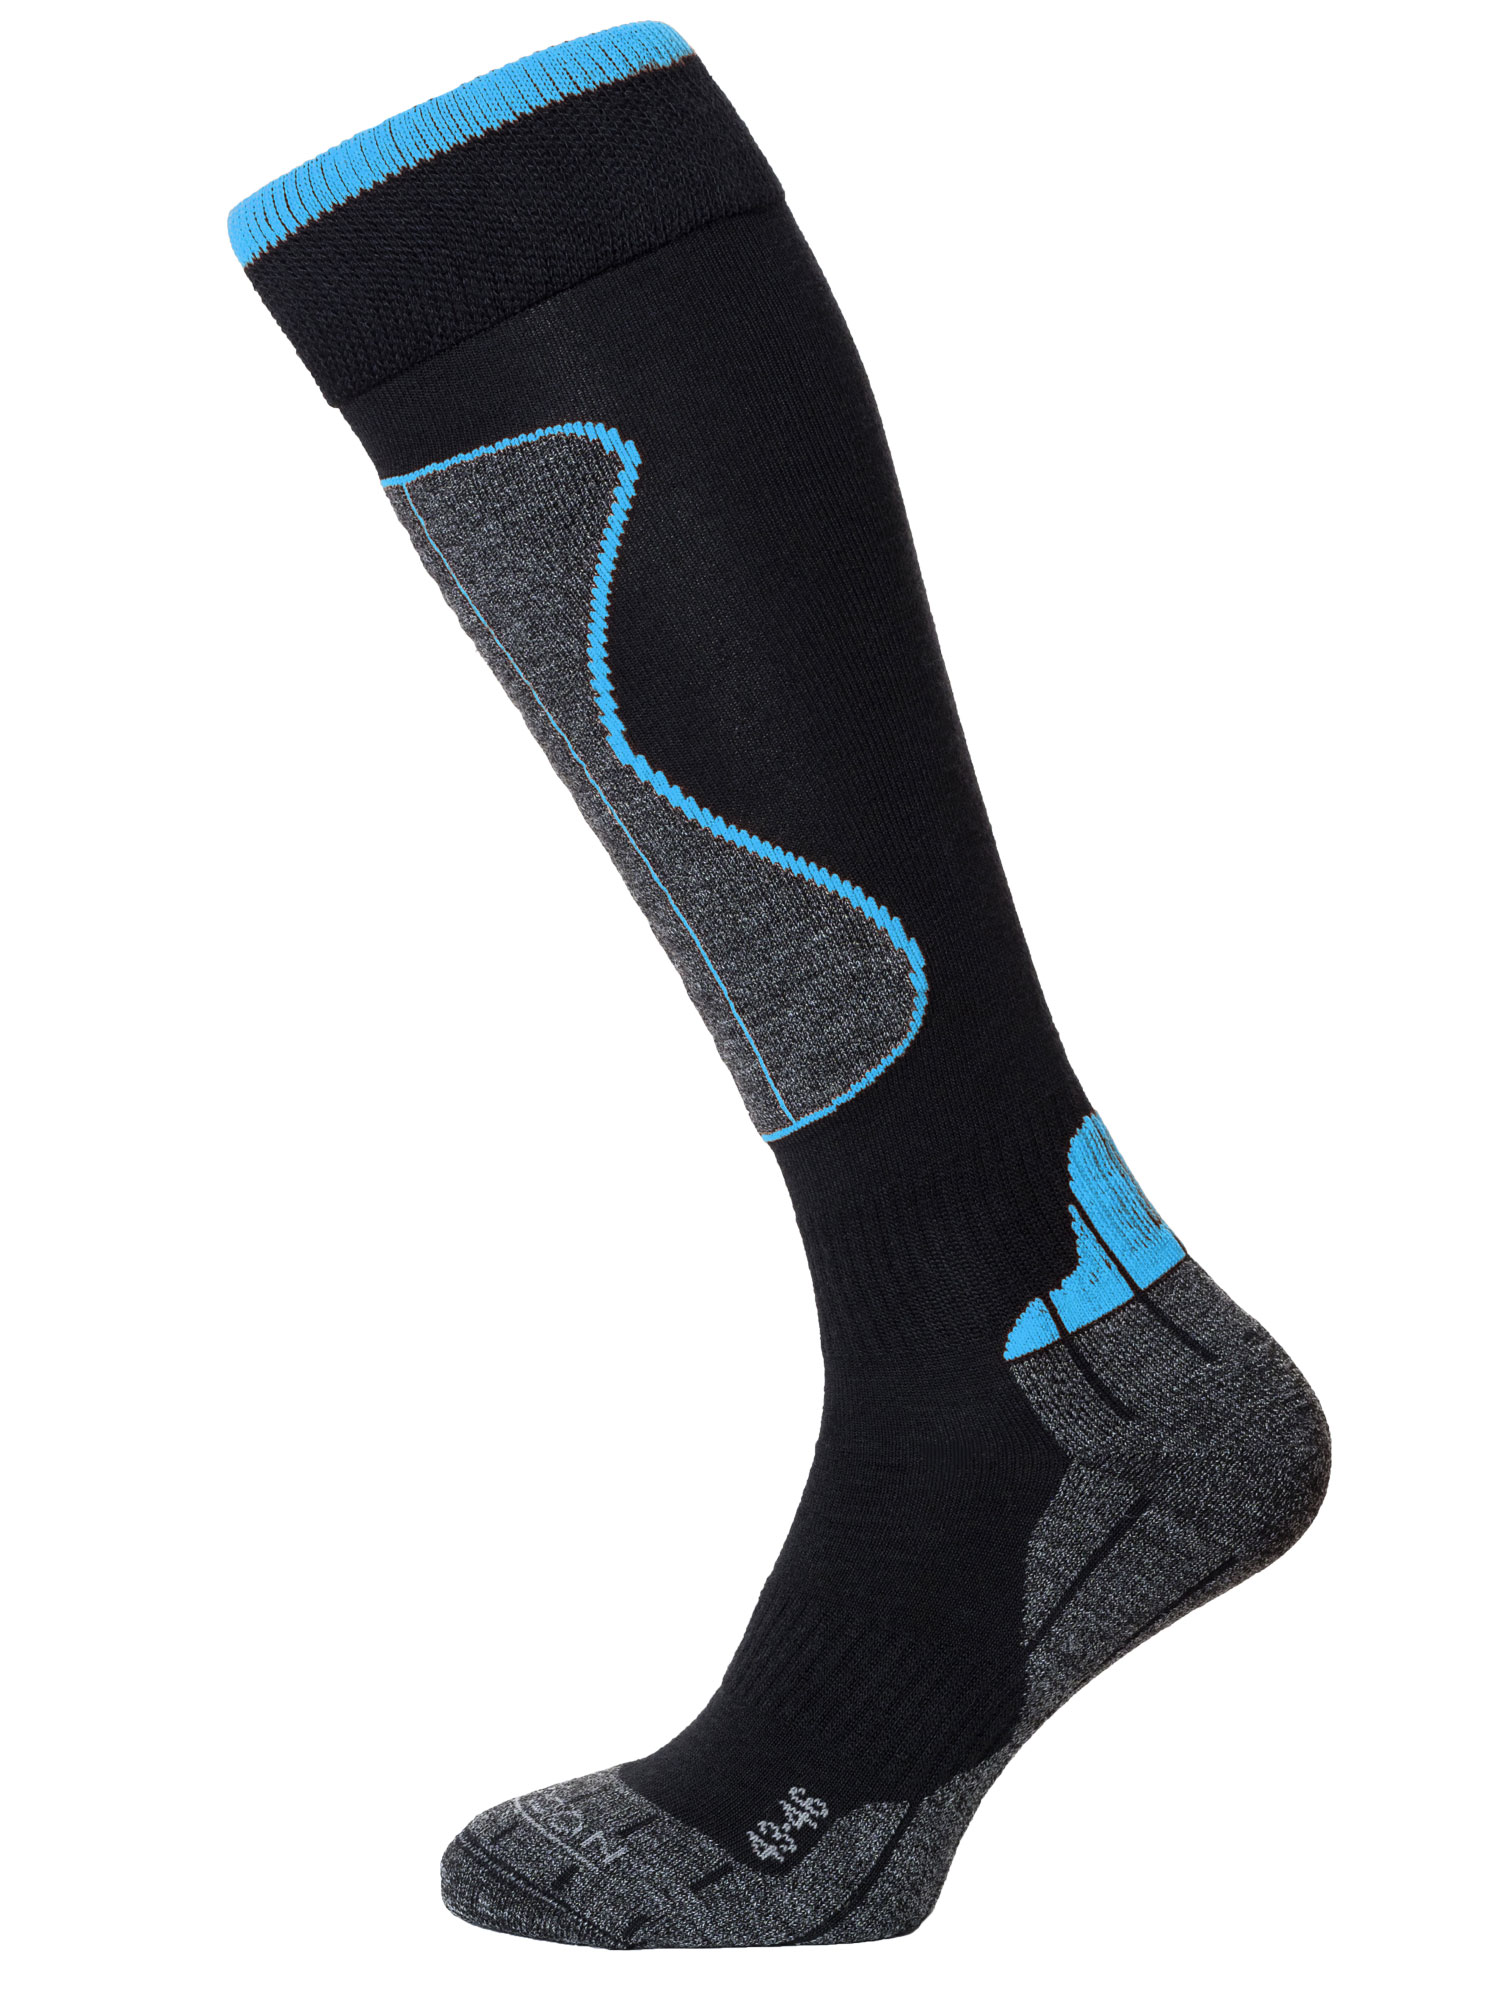 Winter Sport Technical Merino – Black / Turquoise